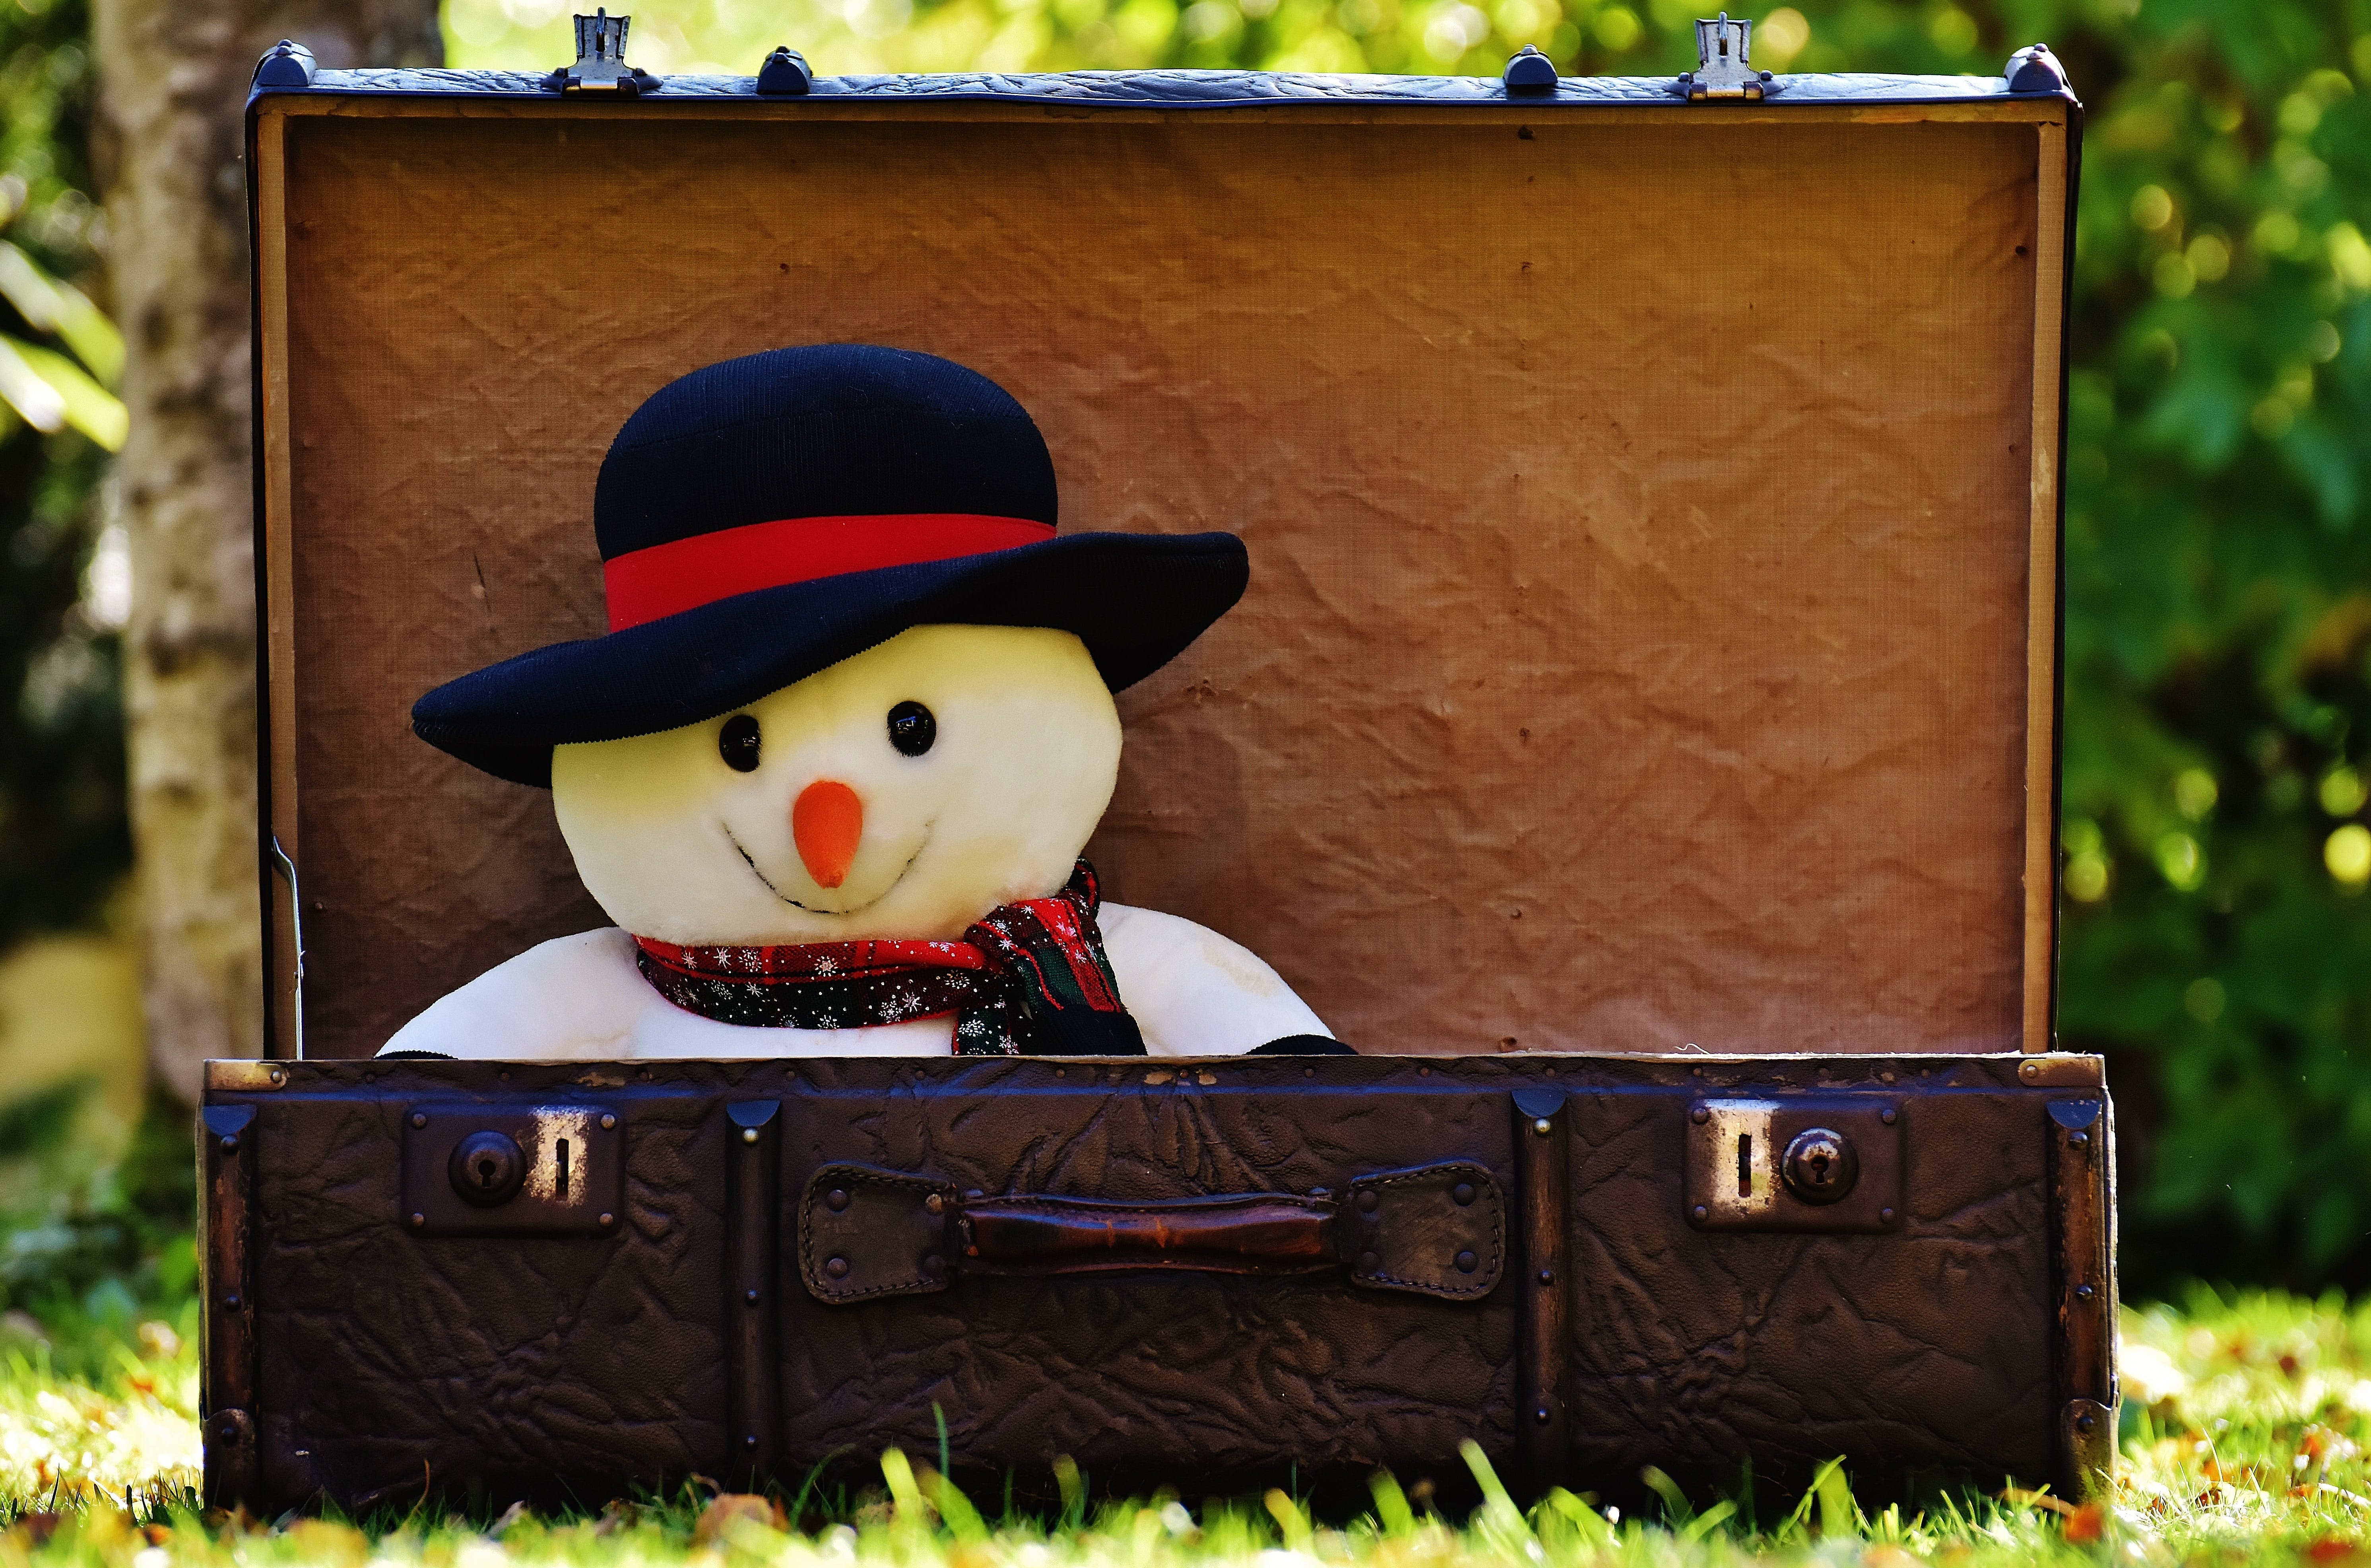 Snowman in Black Hat Doll Inside Chest